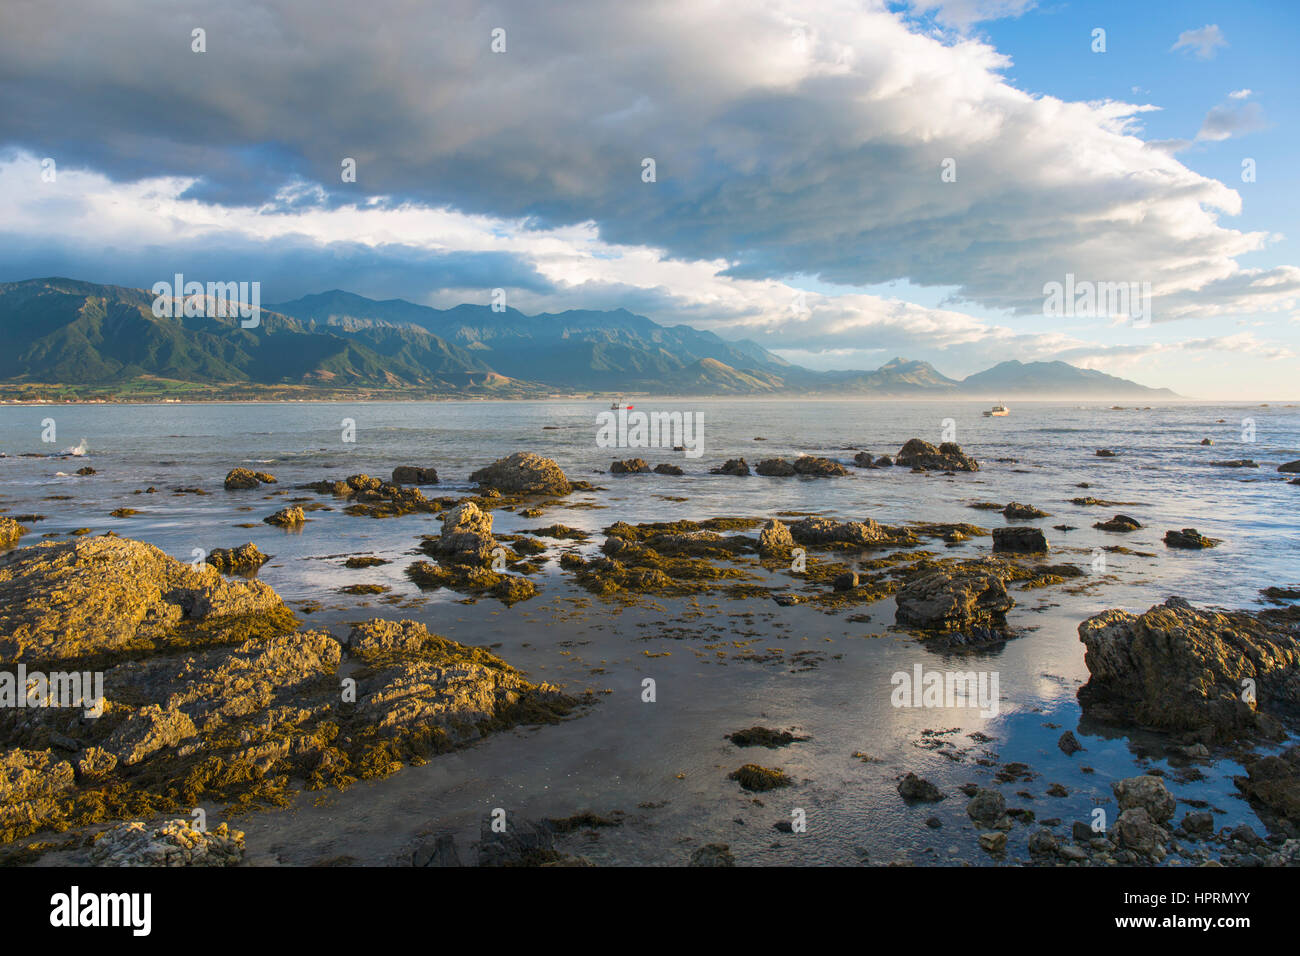 Kaikoura Canterbury New Zealand View From Rocky Shore